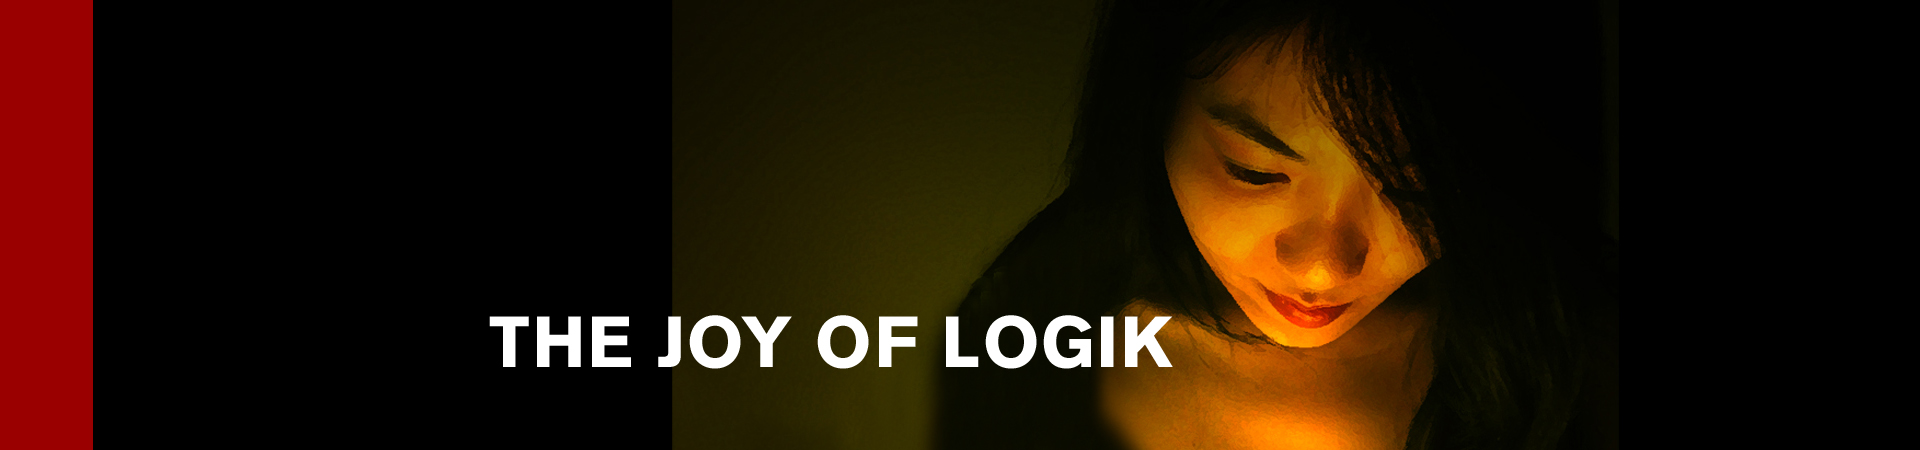 Joy Of Logik hero